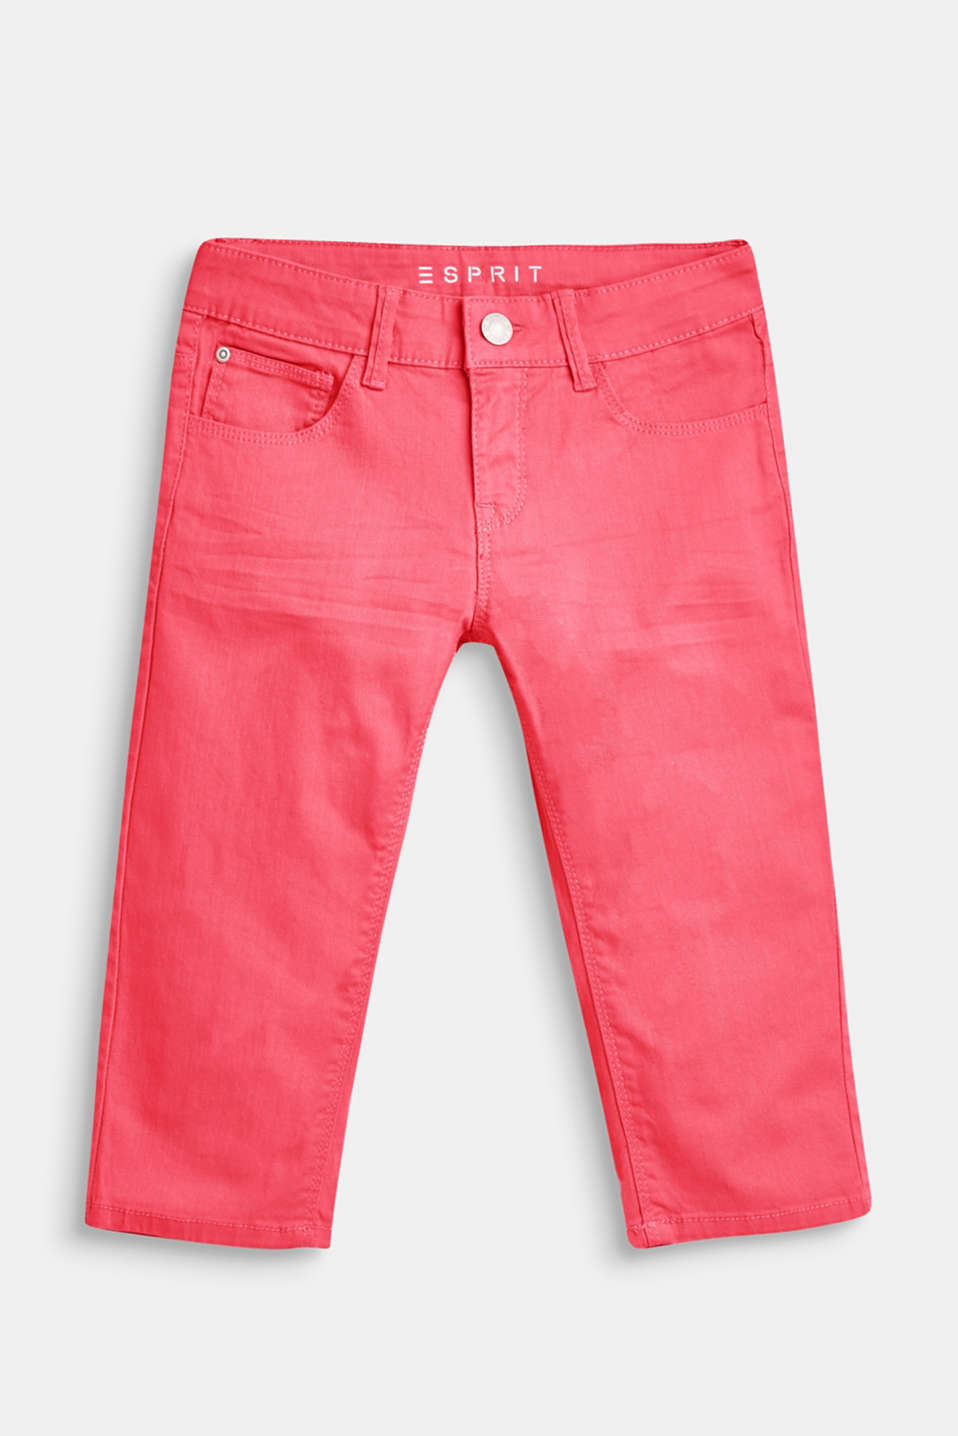 These denim Capri pants in a jazzy, on-trend colour are fantastically eye-catching. Cotton containing stretchy elastane provides ultimate comfort.